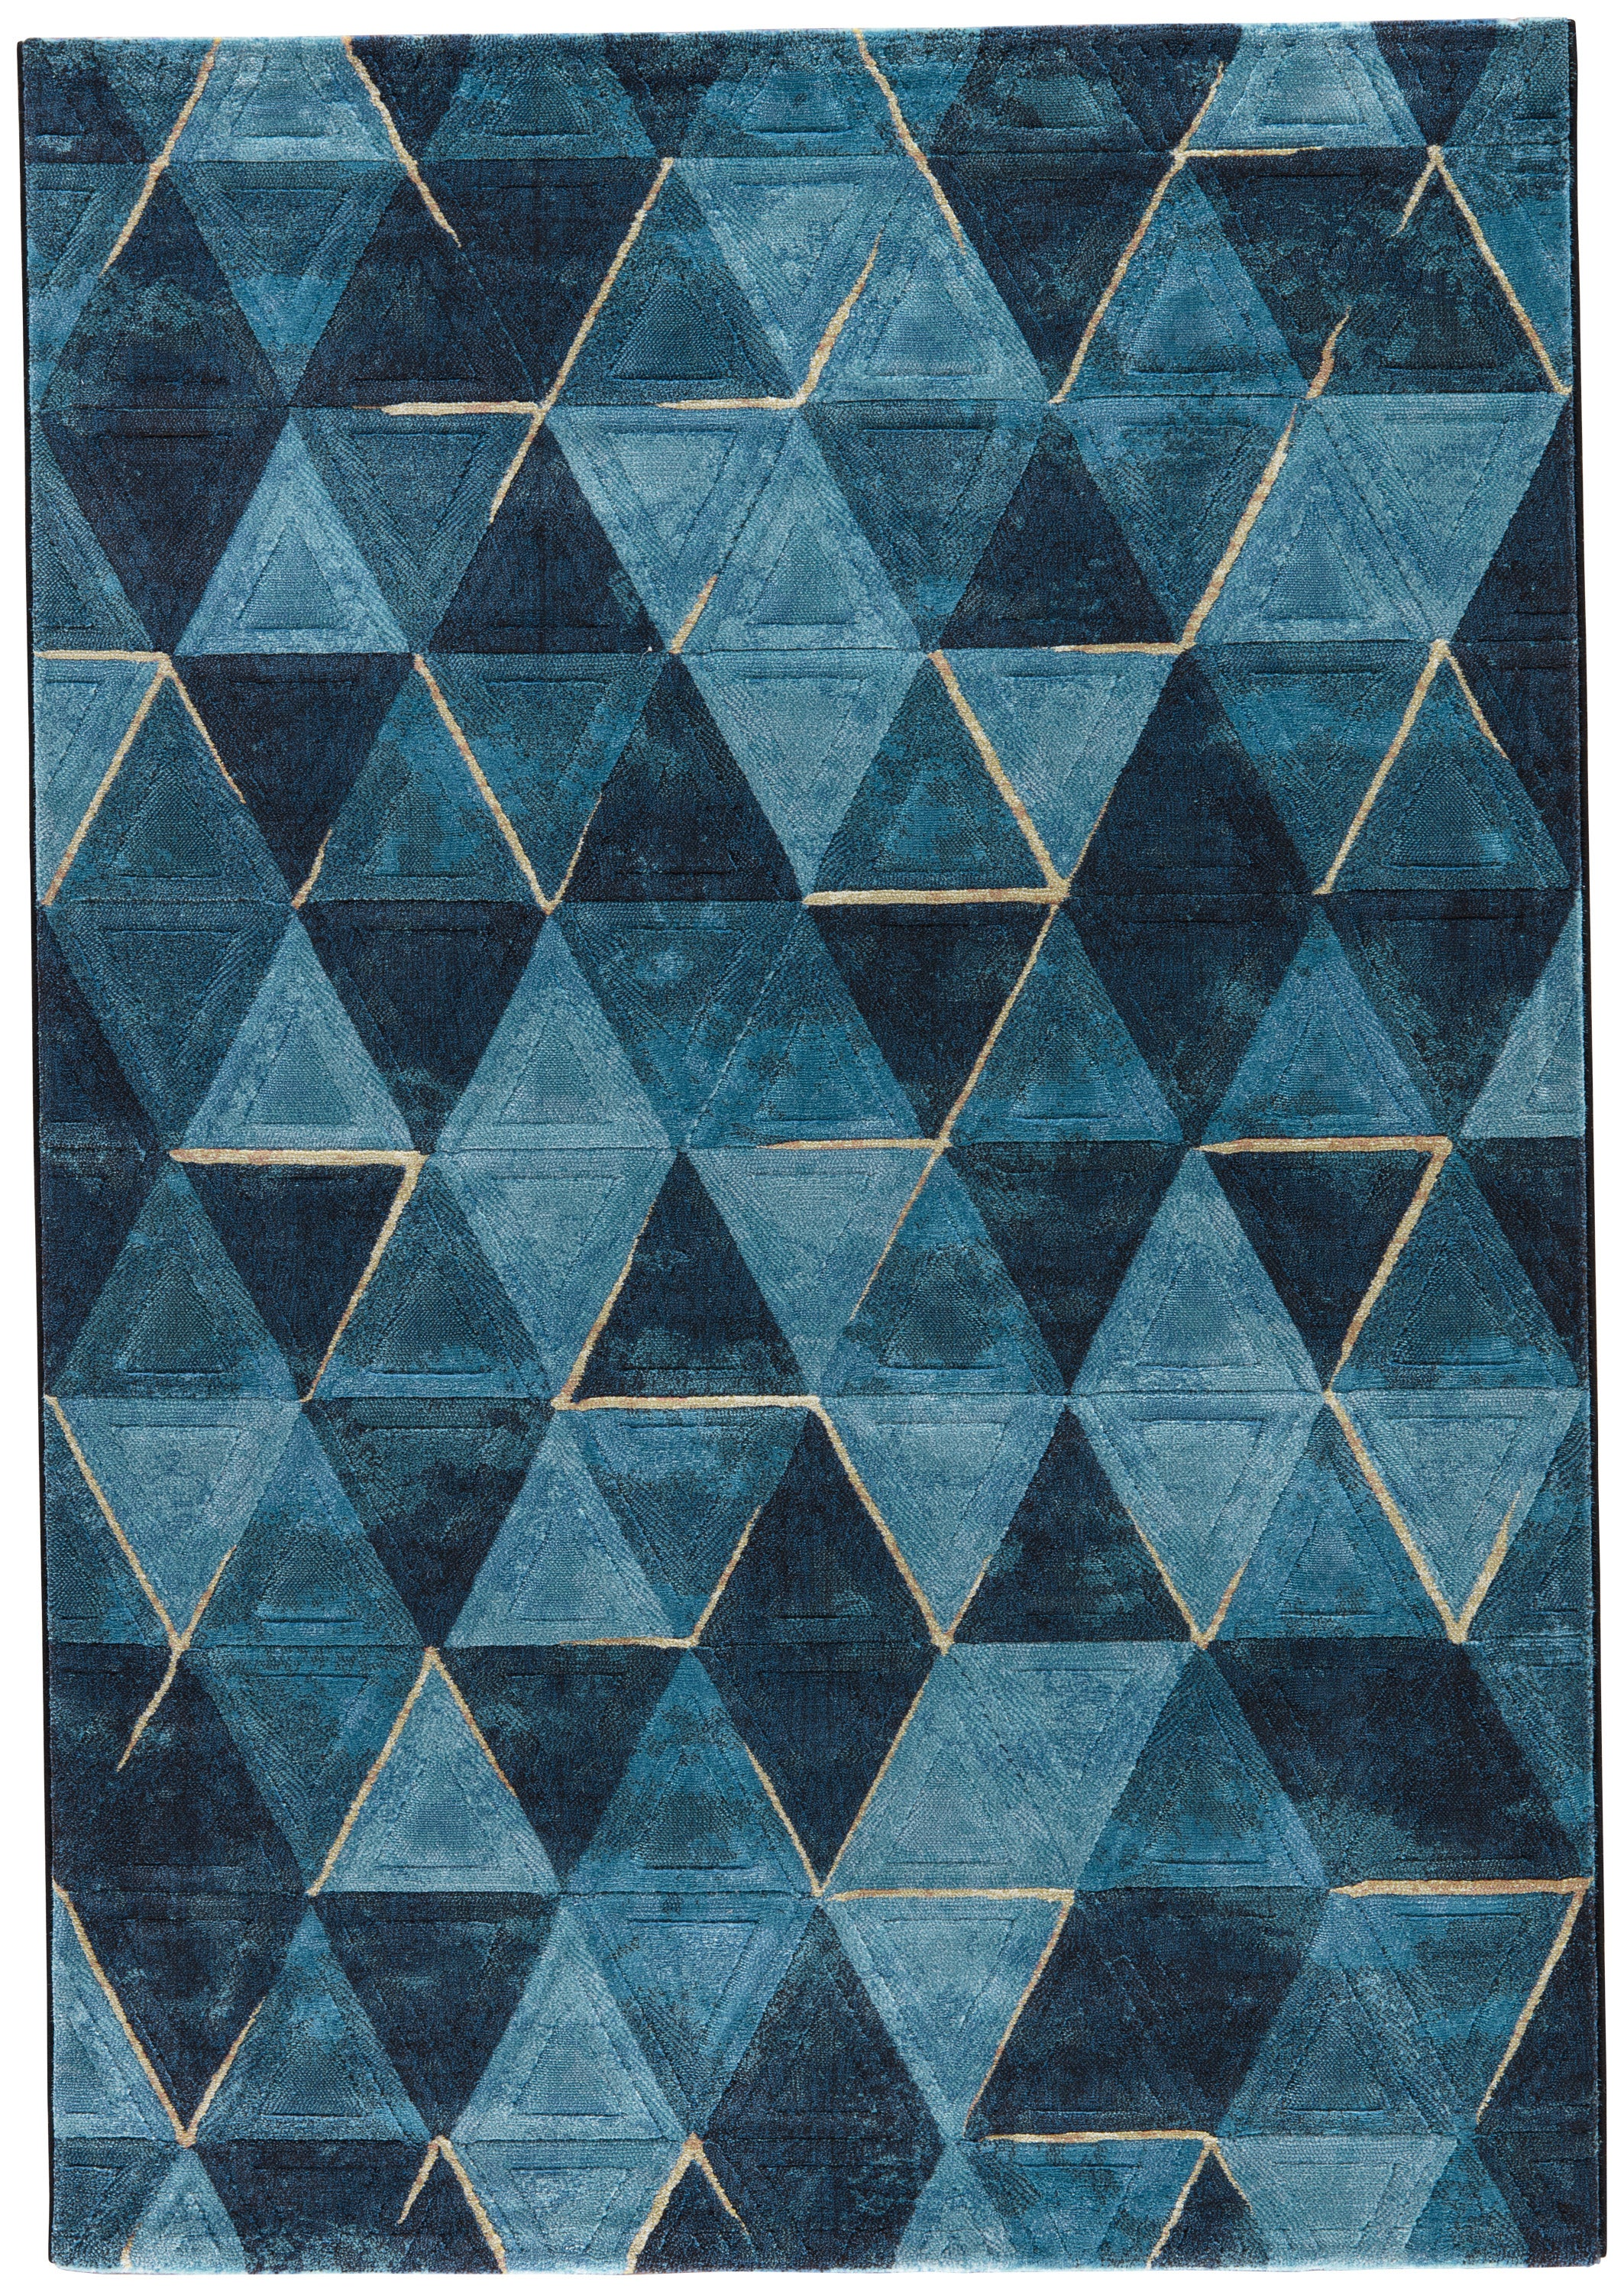 Rectangle Darkblue Geometric Machine Made Synthetics Contemporary recommended for Bedroom, Bathroom, Dining Room, Office, Hallway, Living Room